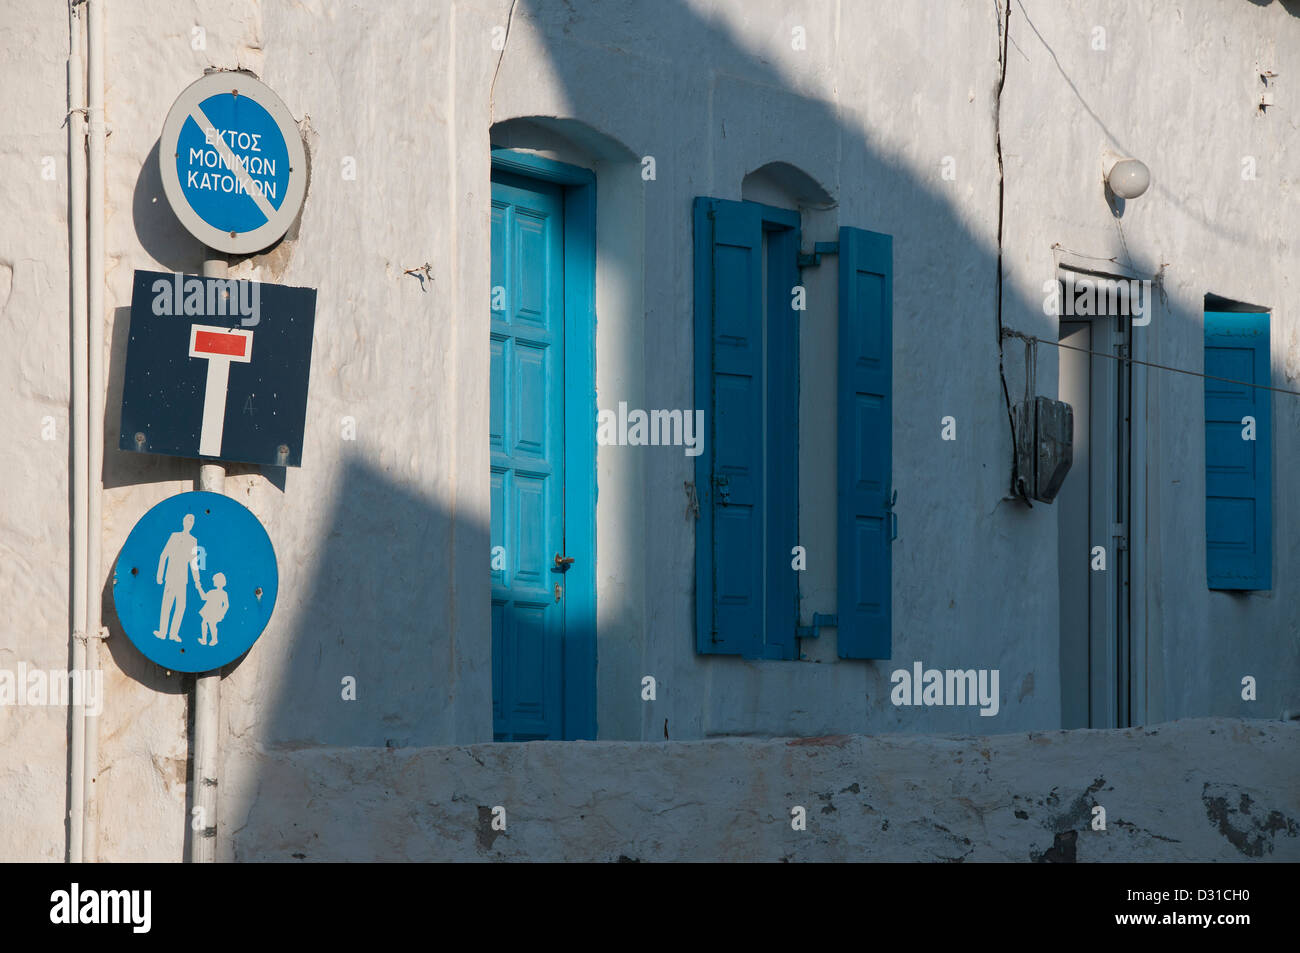 Greek road signs, blue shutters and doors. - Stock Image